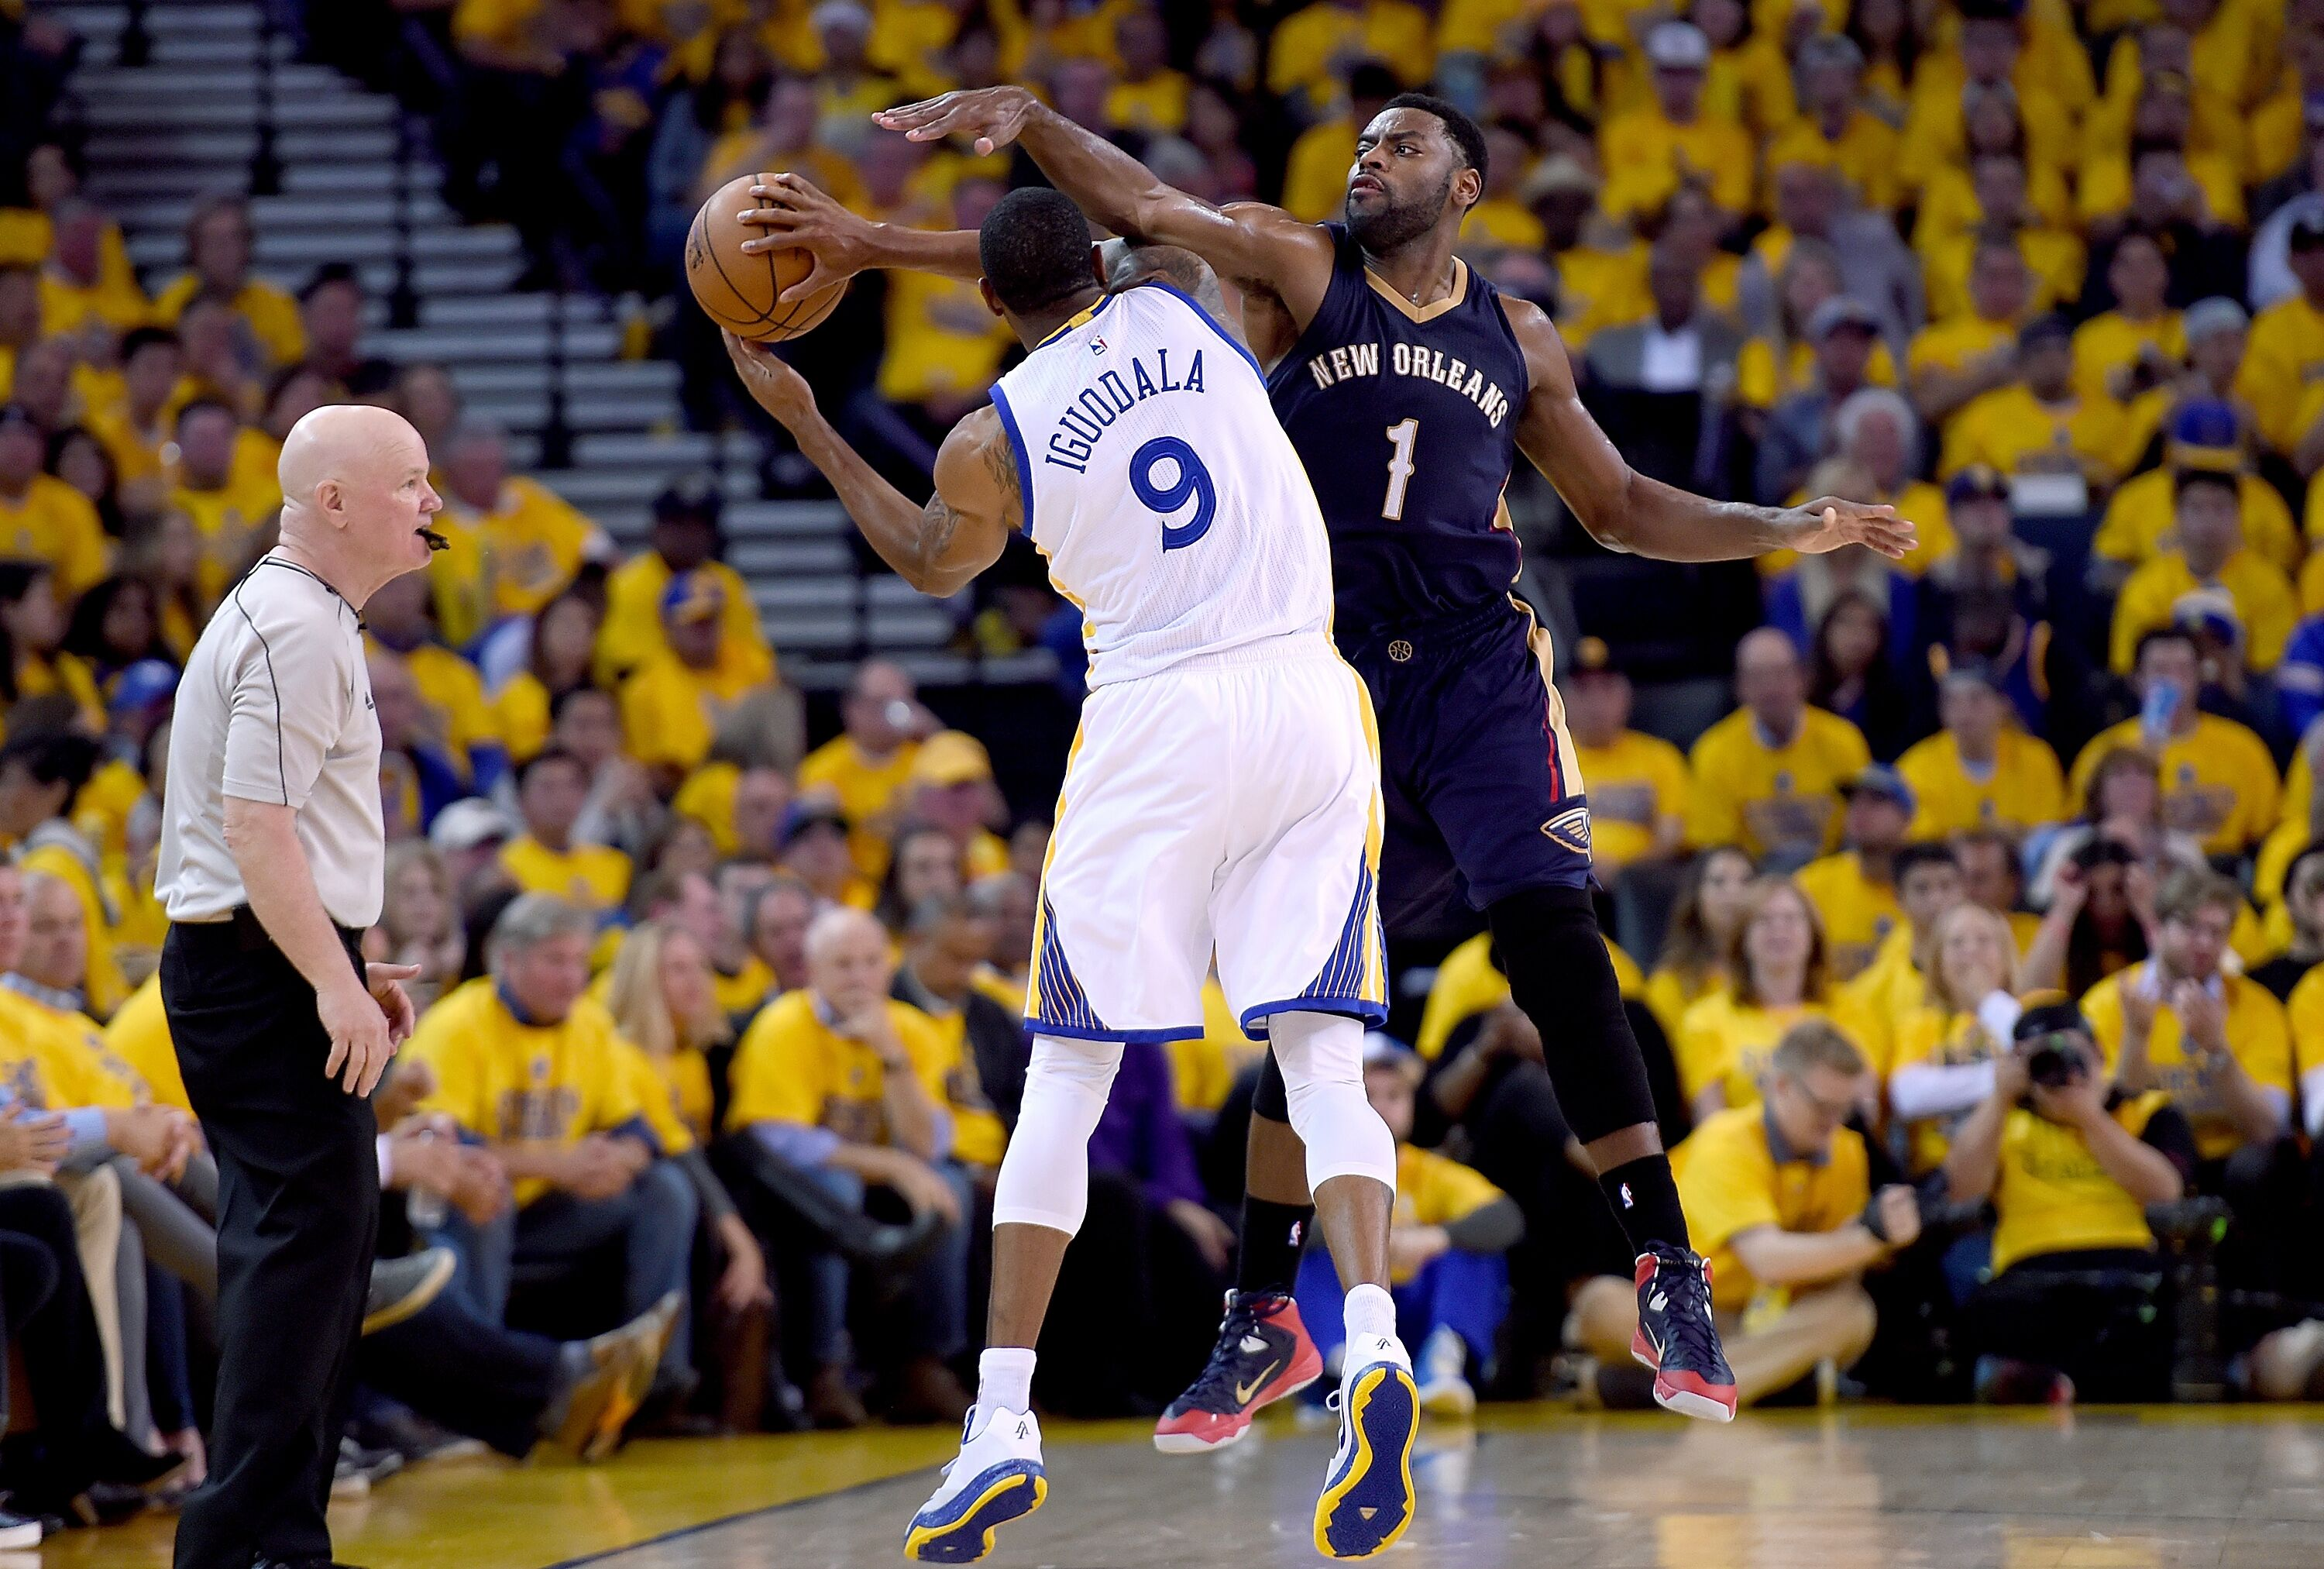 470497540-new-orleans-pelicans-v-golden-state-warriors-game-two.jpg